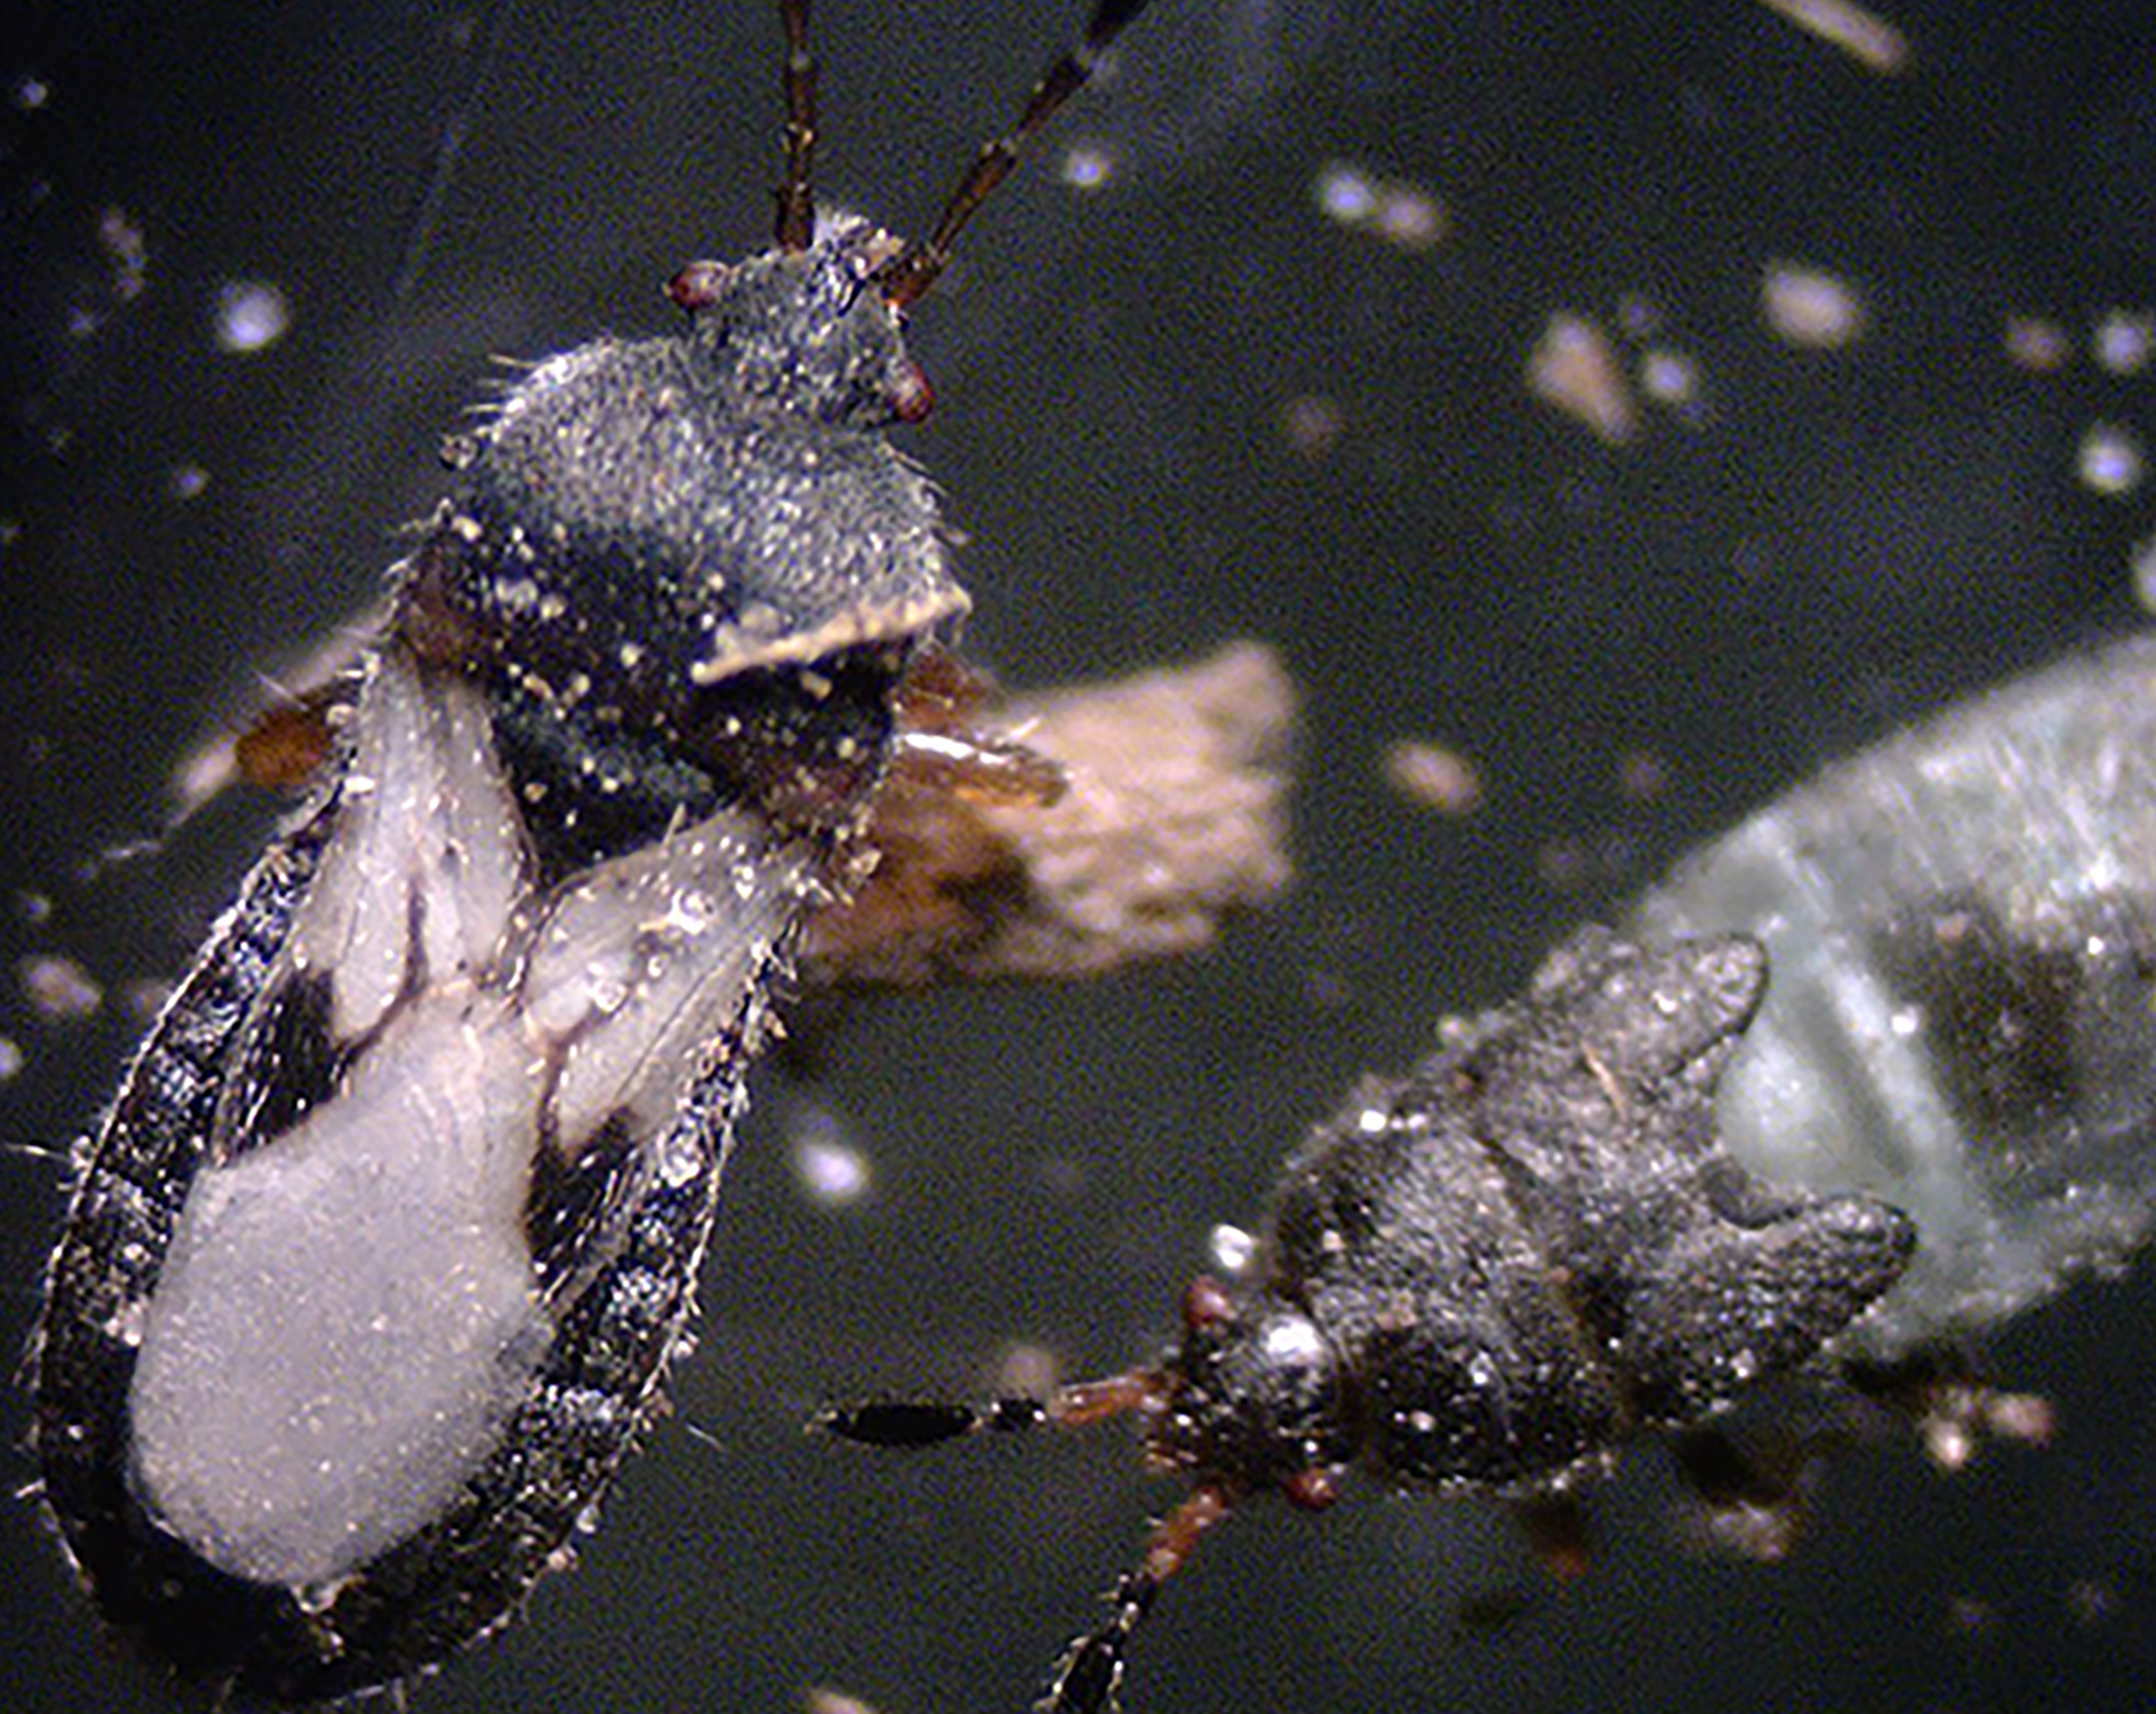 A close-up view of chinch bugs.